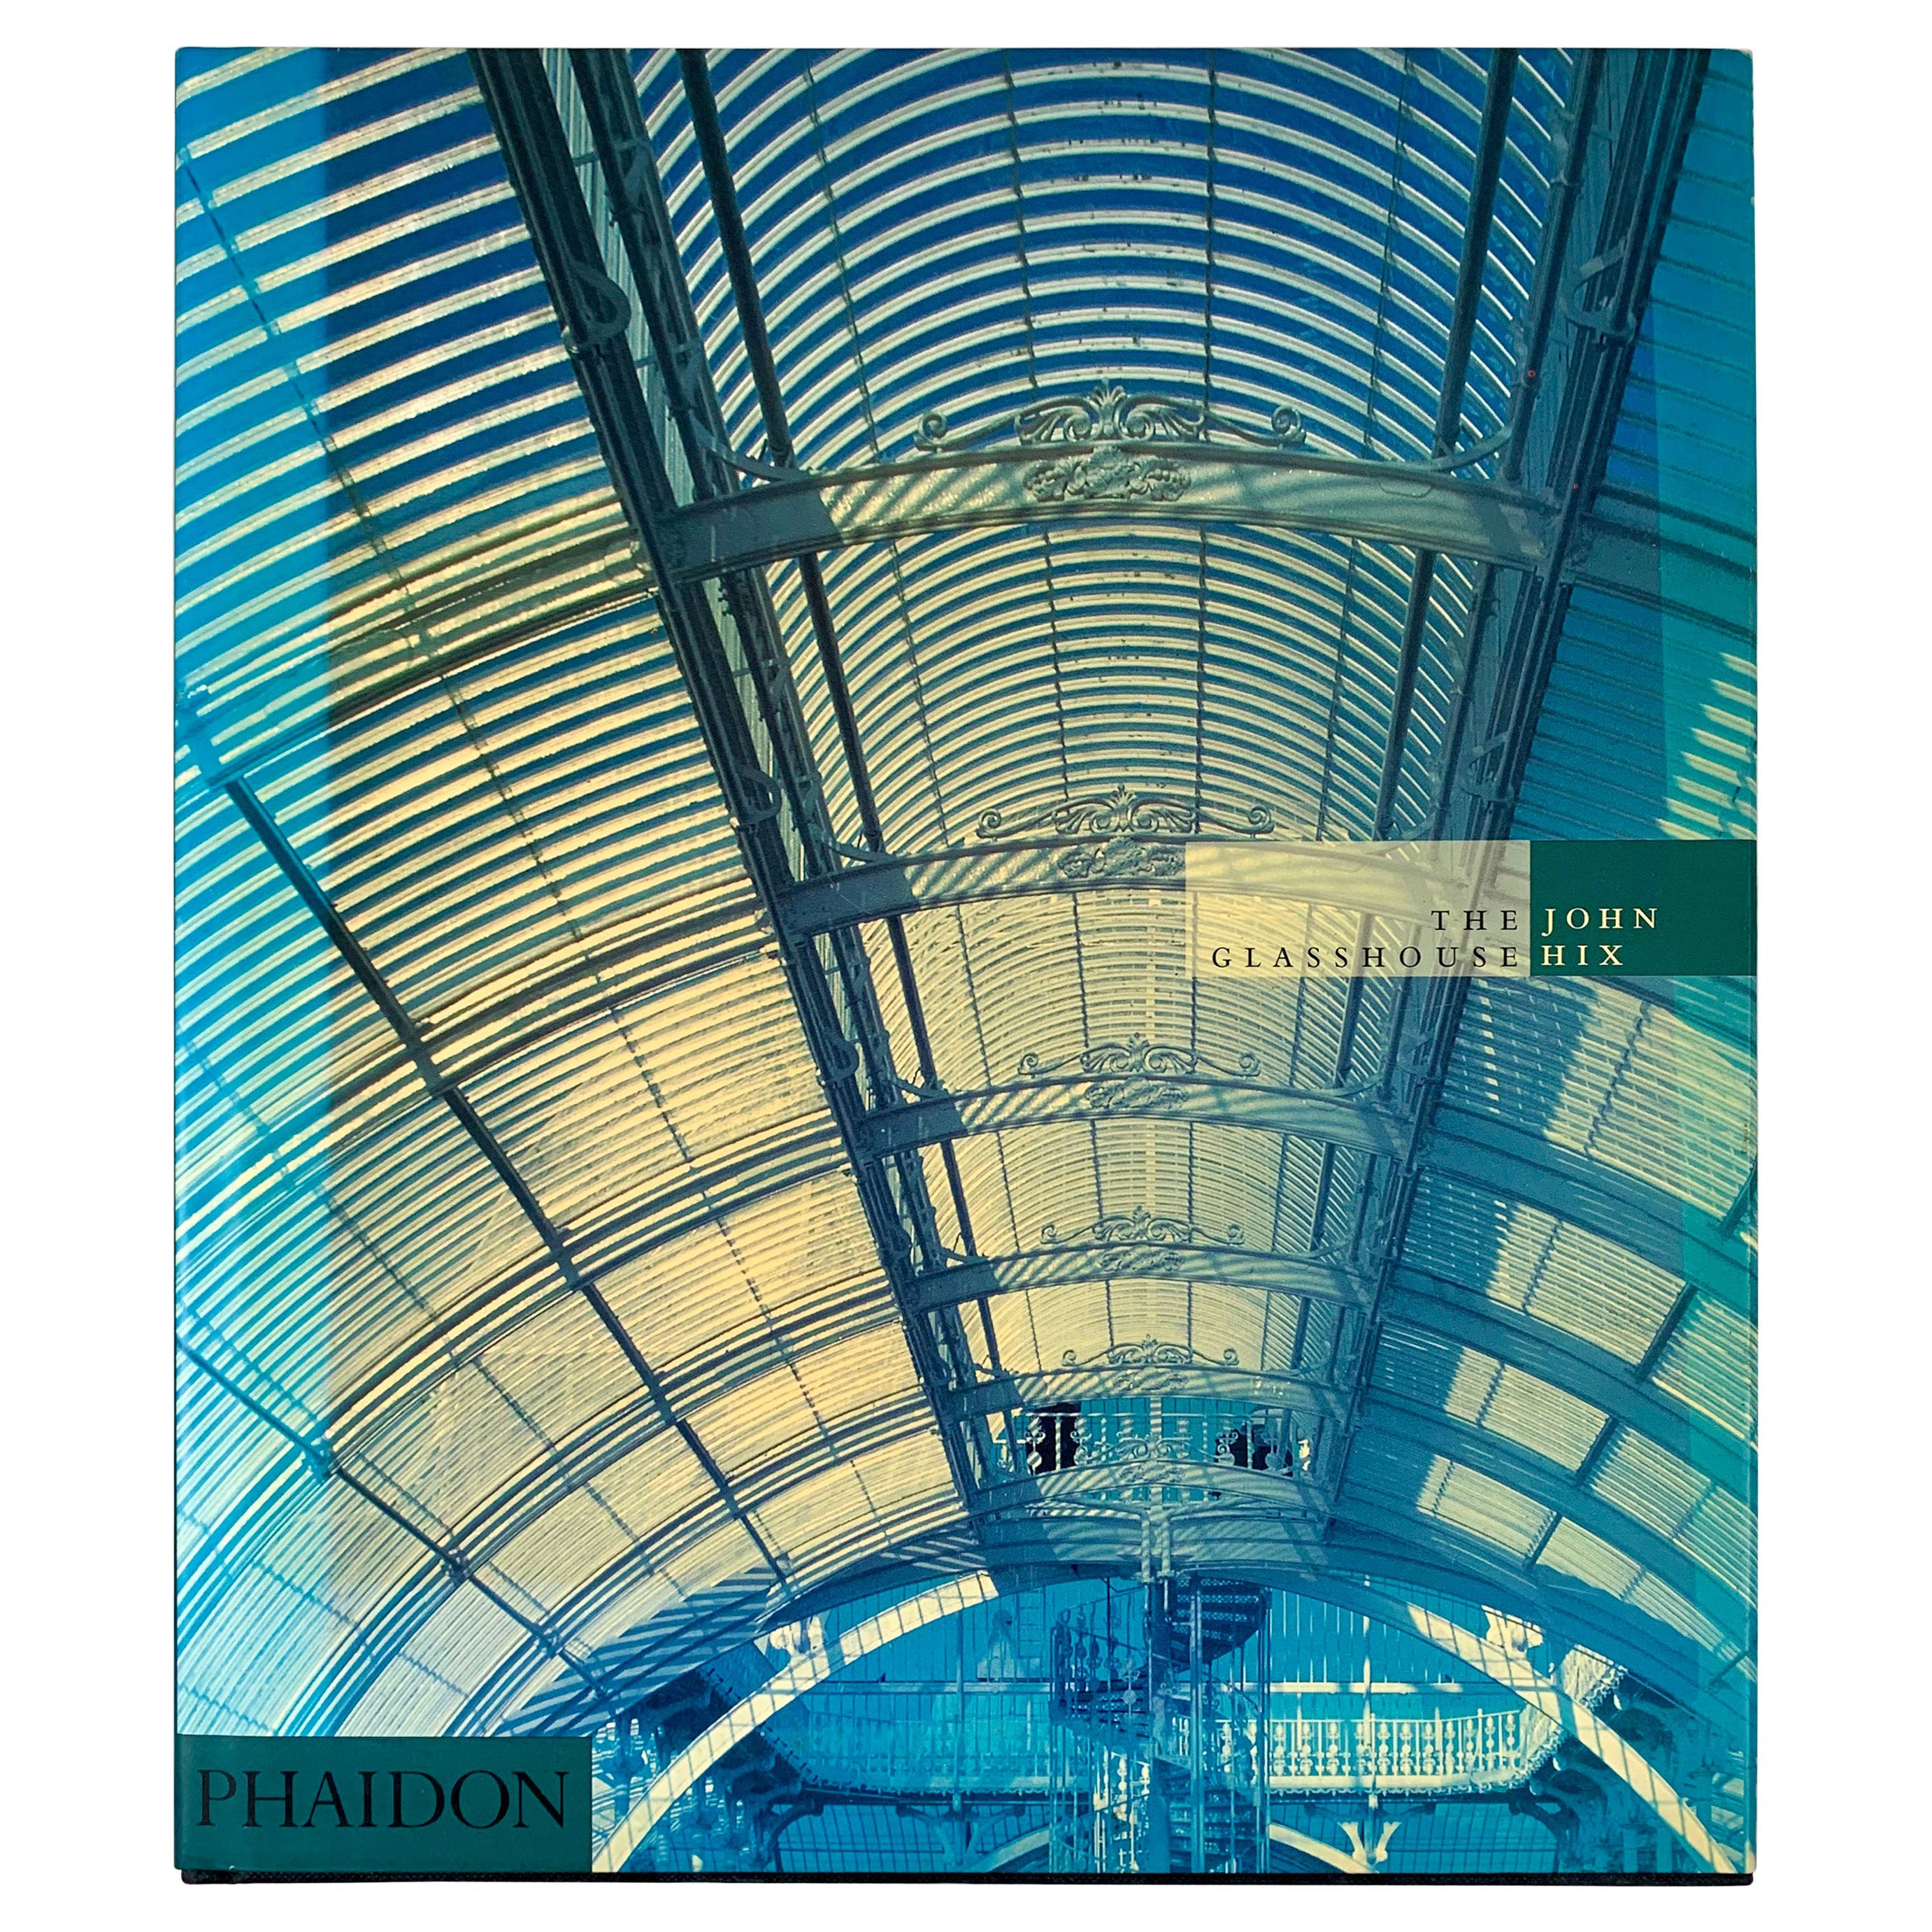 The Glasshouse by John Hix – Phaidon Architecture History and Garden Photo Book